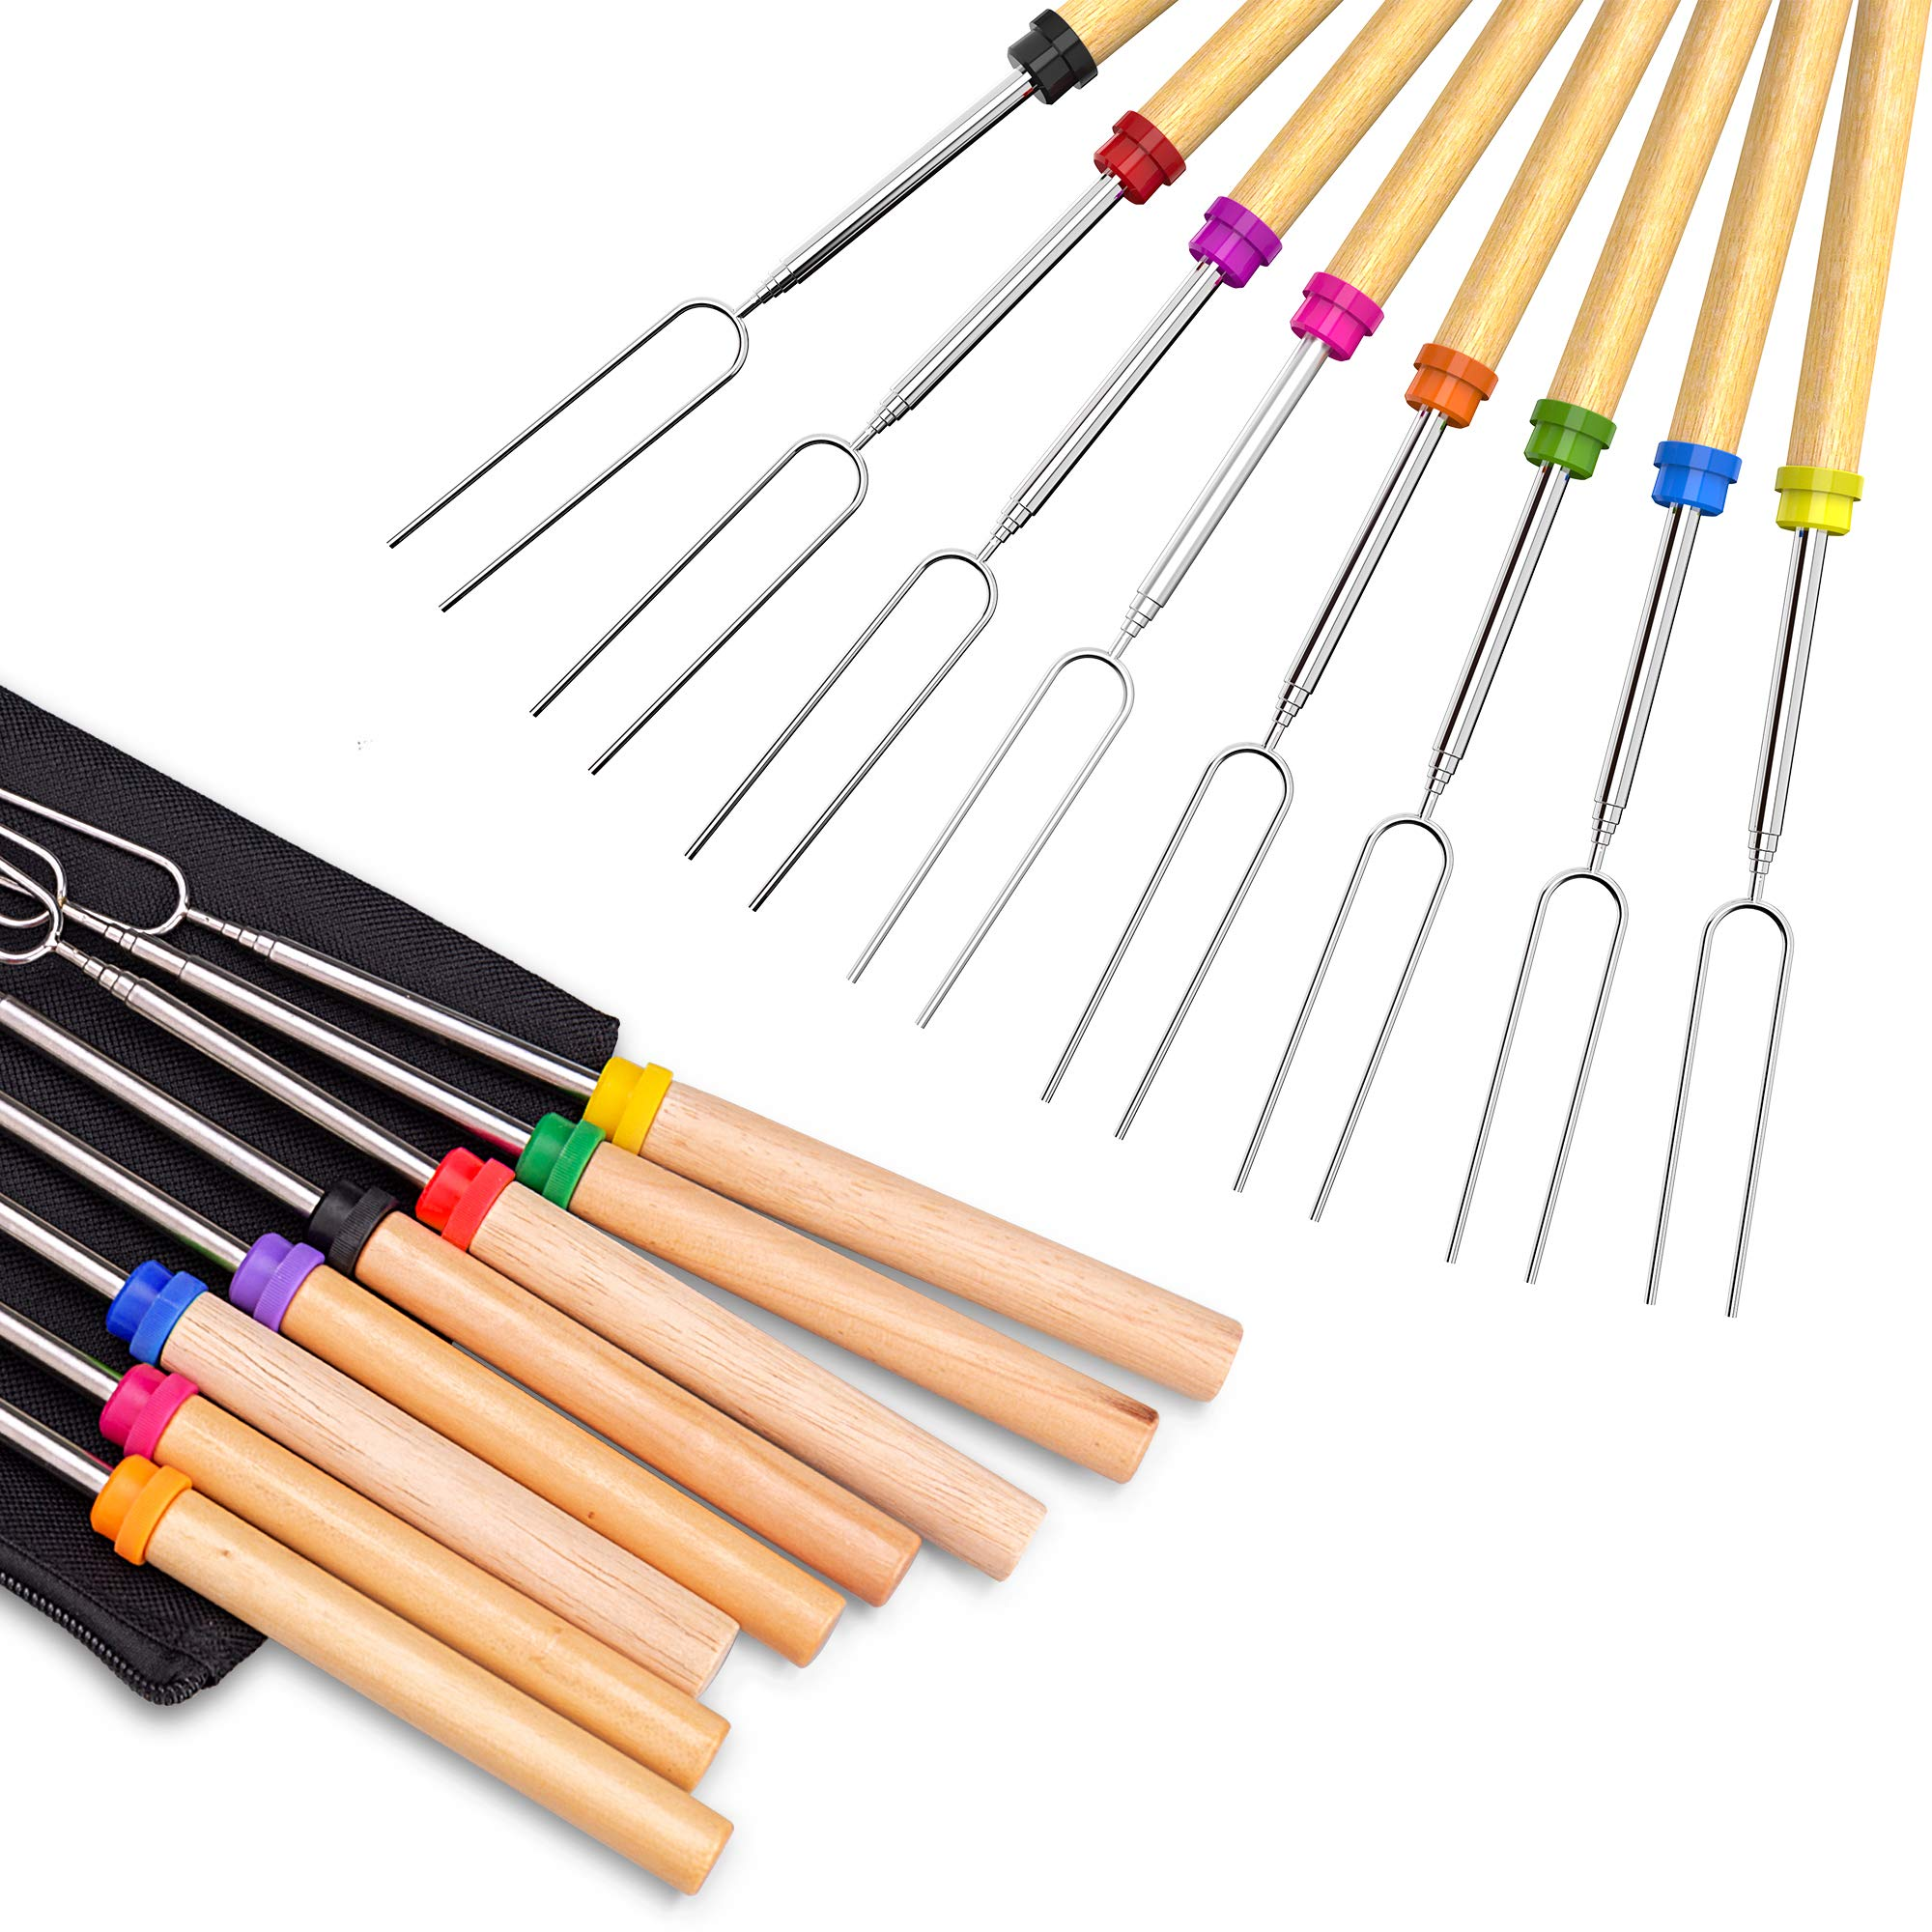 Roasting Sticks, Ezire Marshmallow Roasting Sticks 32 Inch Extendable Forks for BBQ at the Campfire, Set of 8 by Ezire